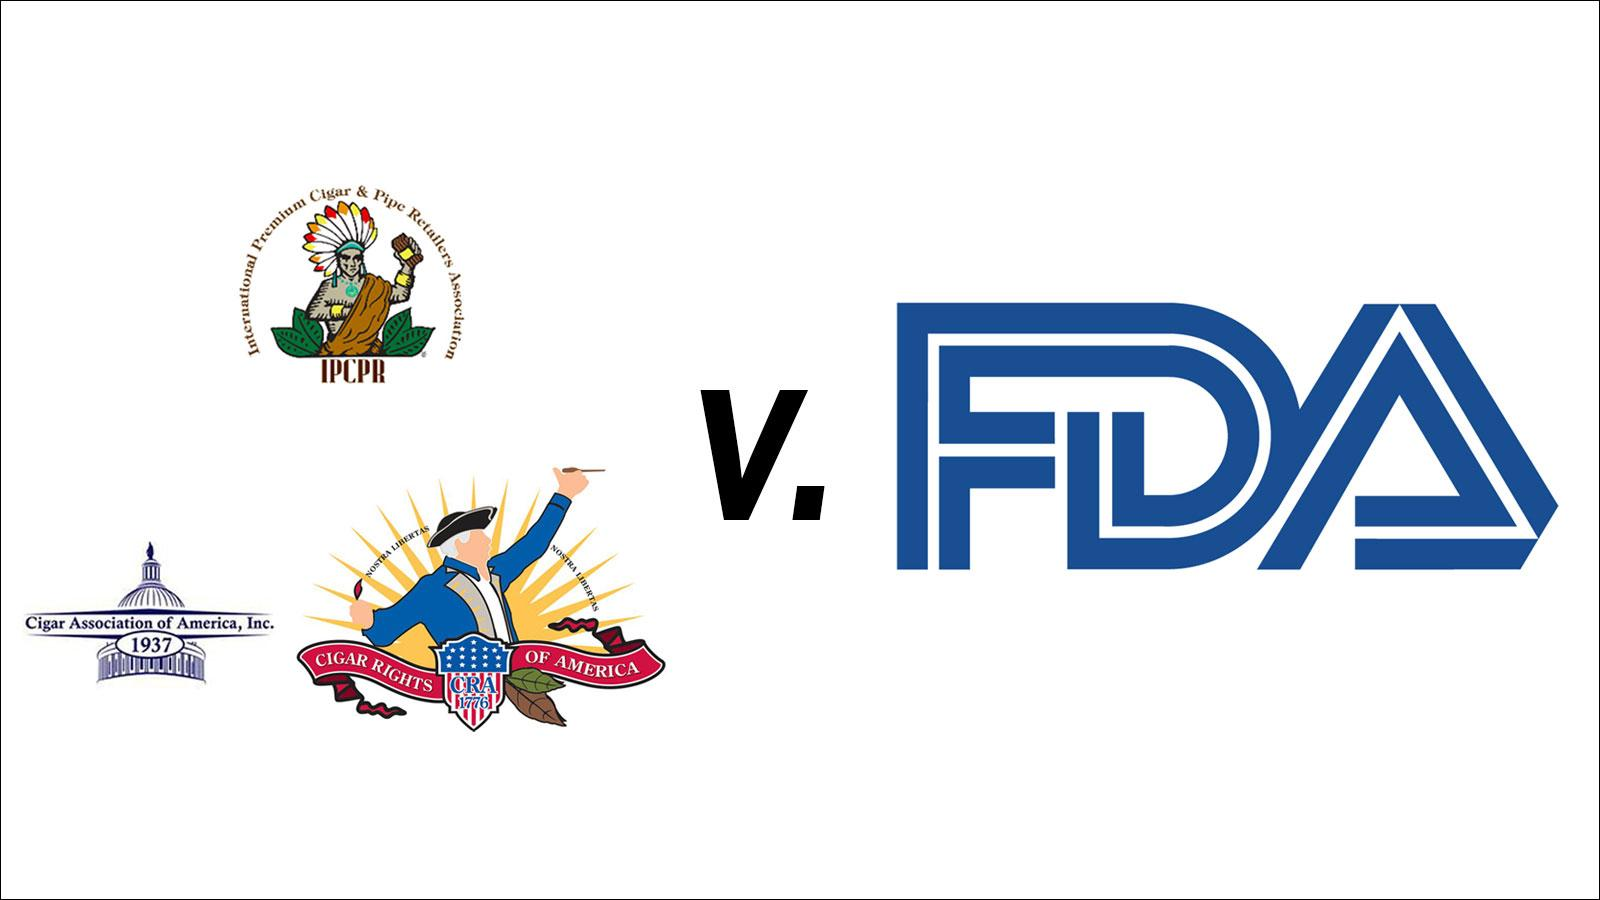 Cigar Industry Files Motion, Moving FDA Lawsuit Forward